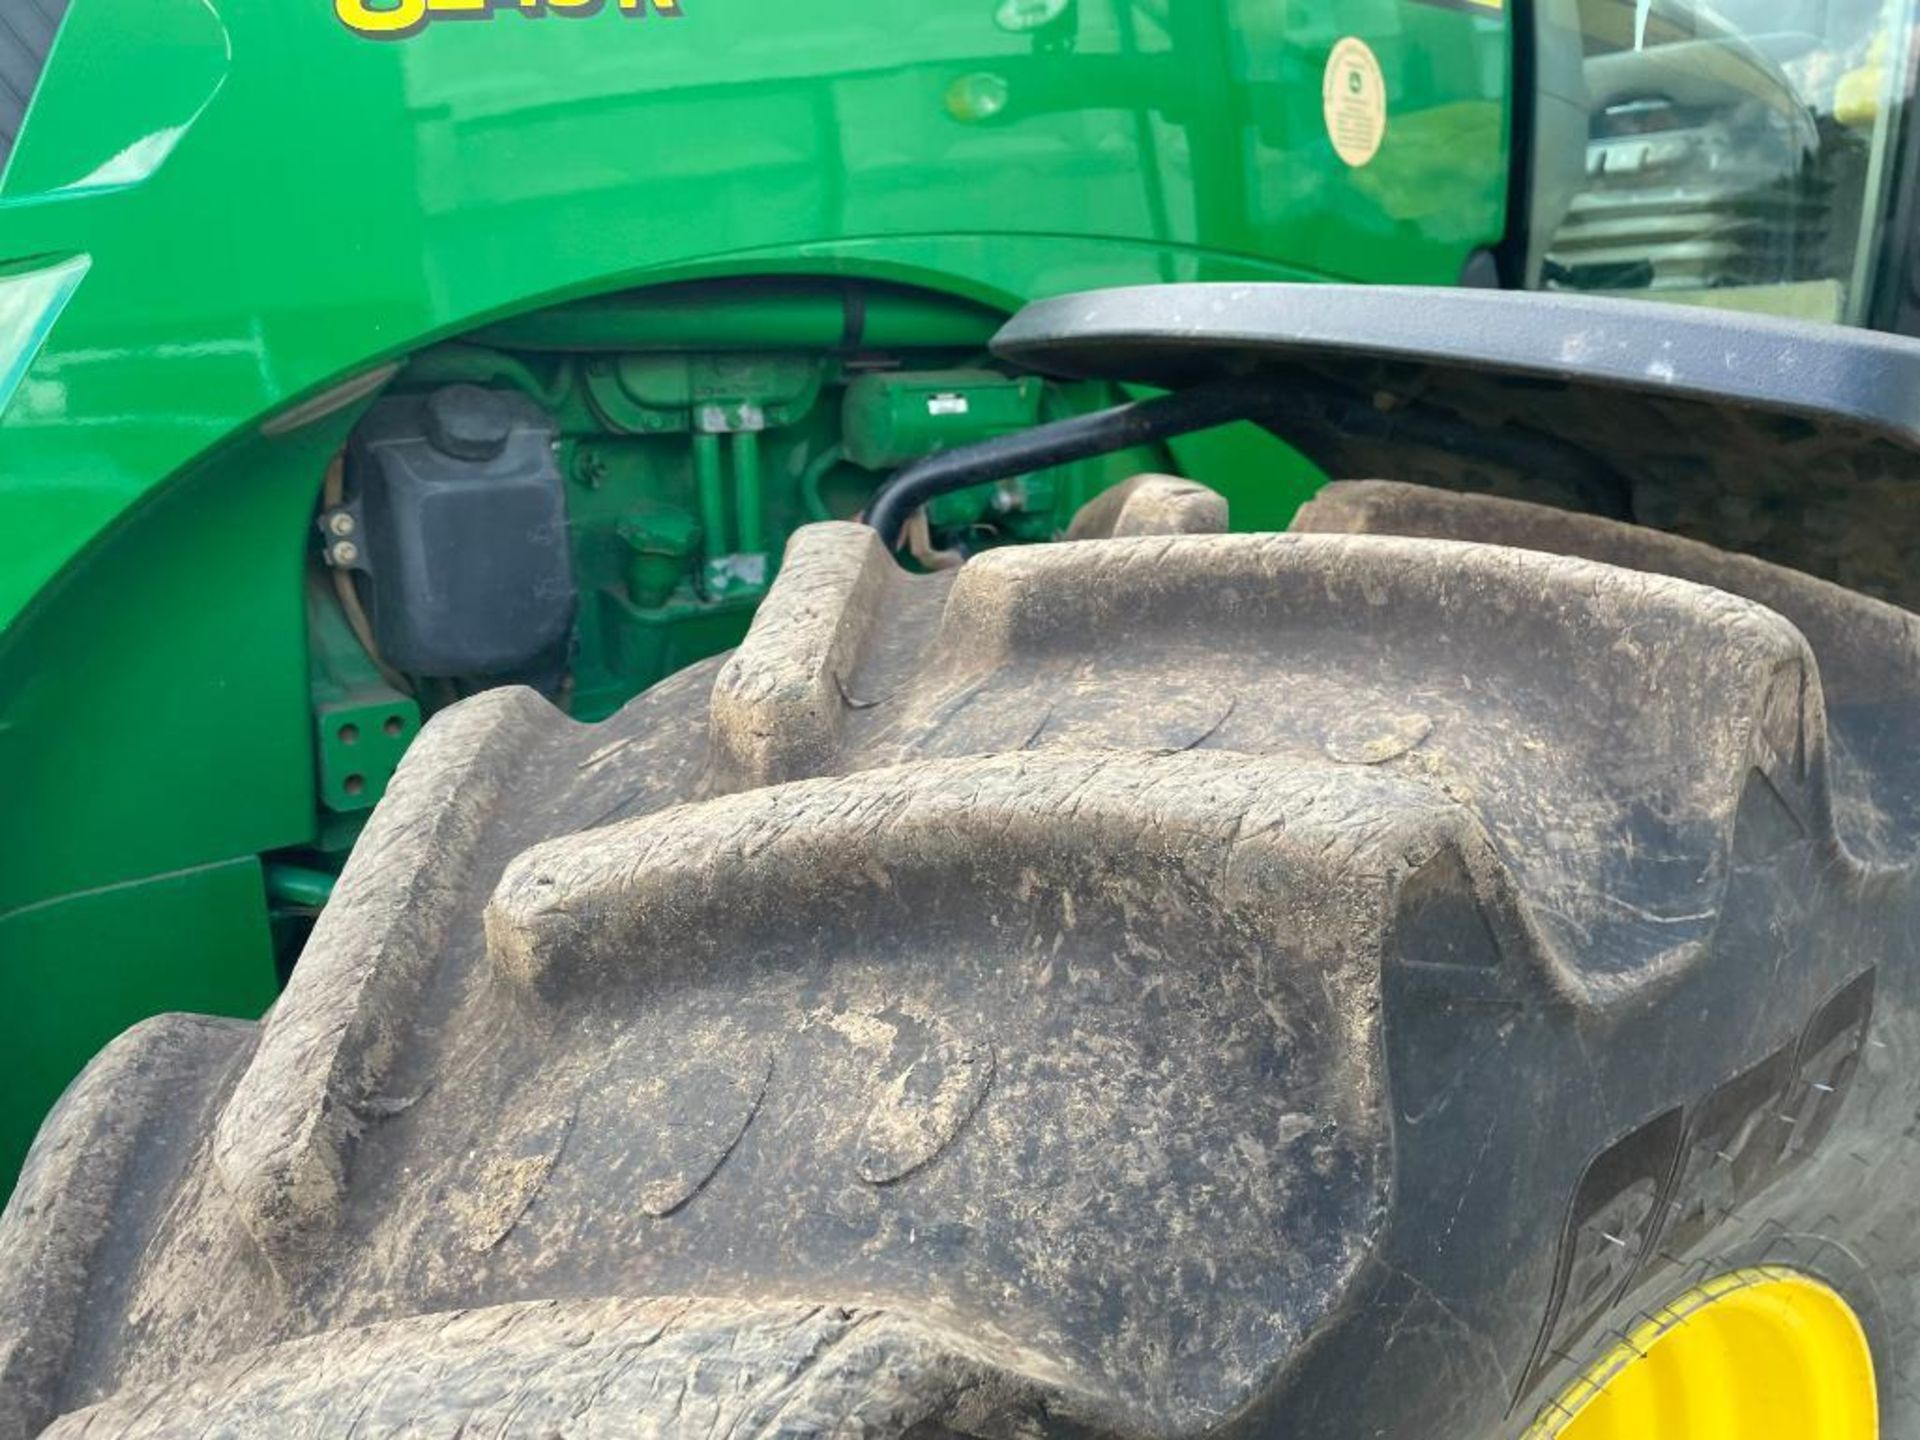 2011 John Deere 8245R 40kph Powershift with 4 electric spools, TLS front suspension and 900kg front - Image 10 of 18